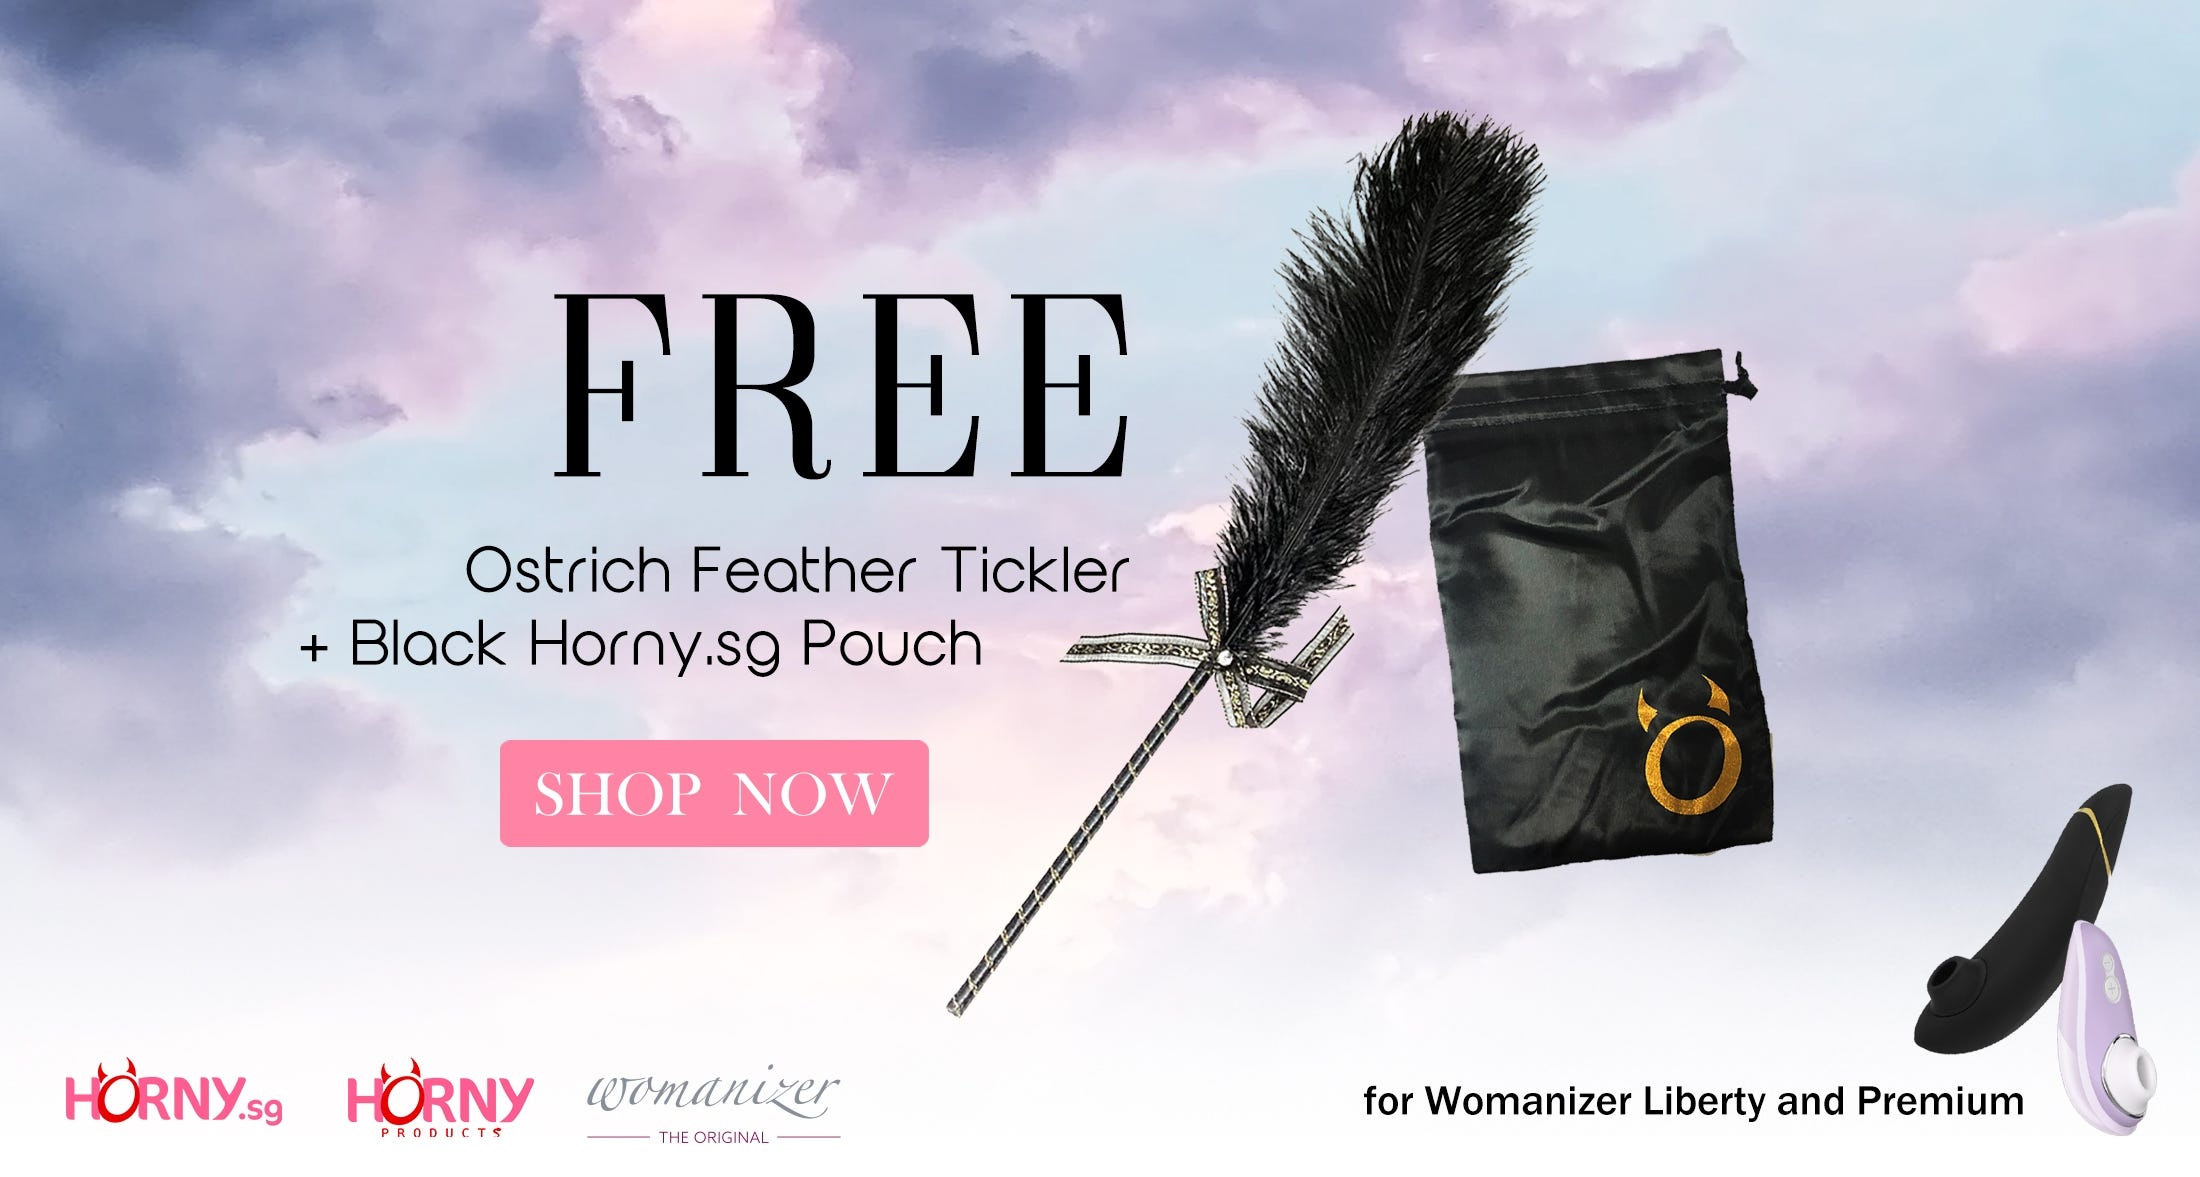 Free Ostrich Feather this Black Friday!